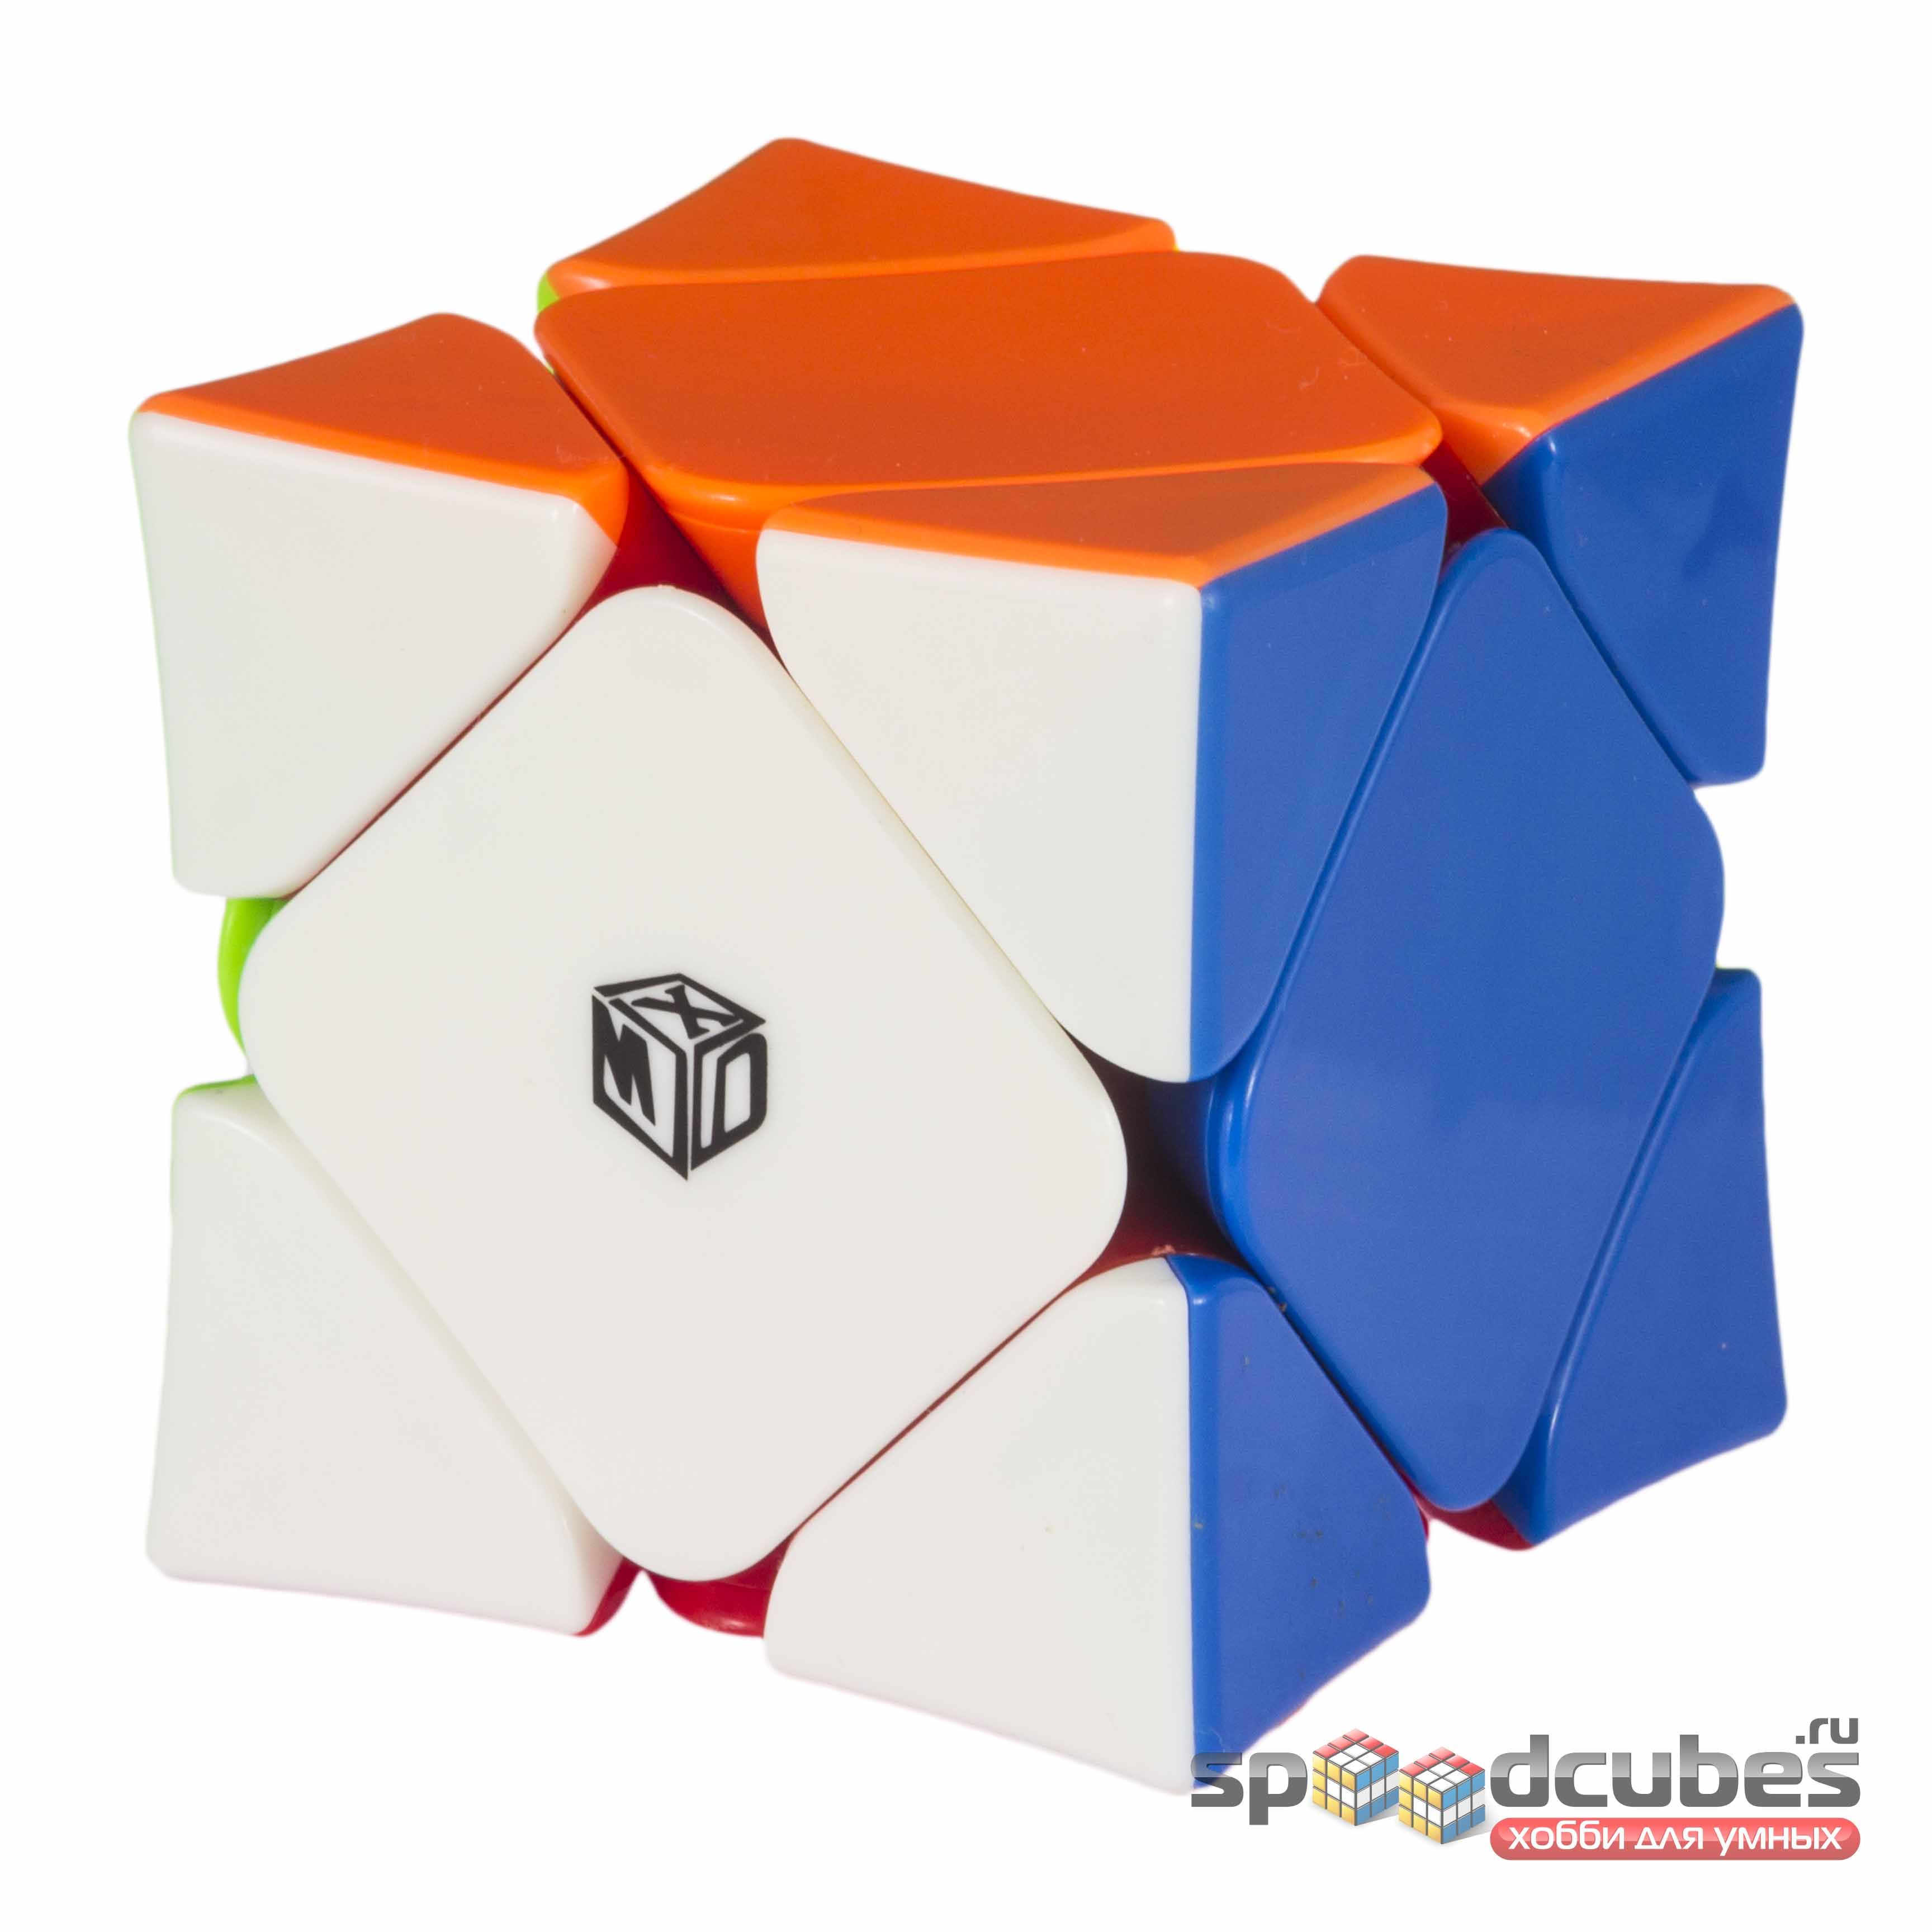 QiYi MoFangGe X Man Magnetic Skewb Wingy Color 3